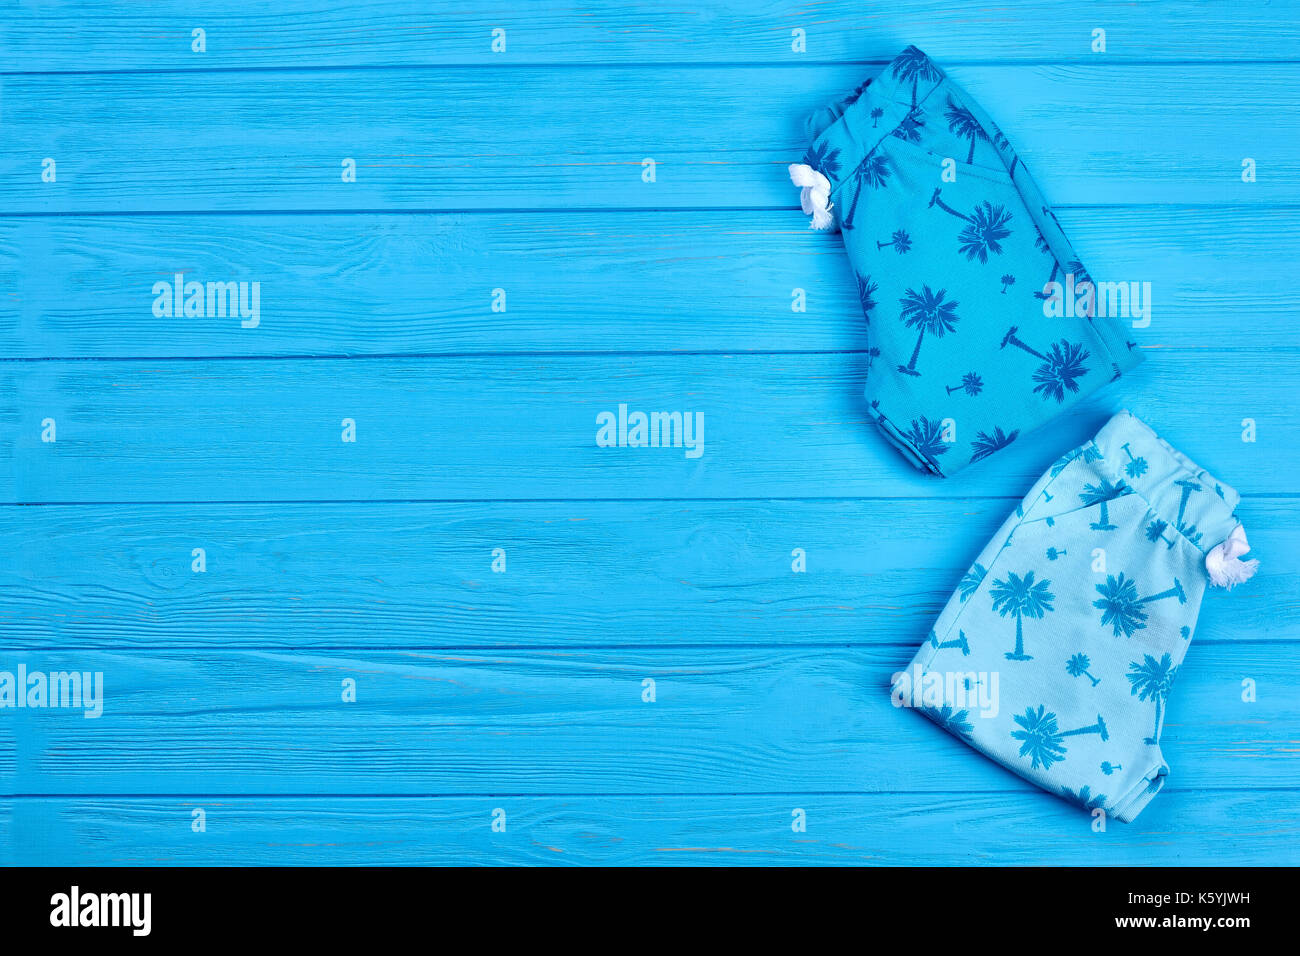 f6d272ef0366 Blue printed infant baby leggings. High quality organic baby pants and copy  space. Infant kids summer wardrobe.